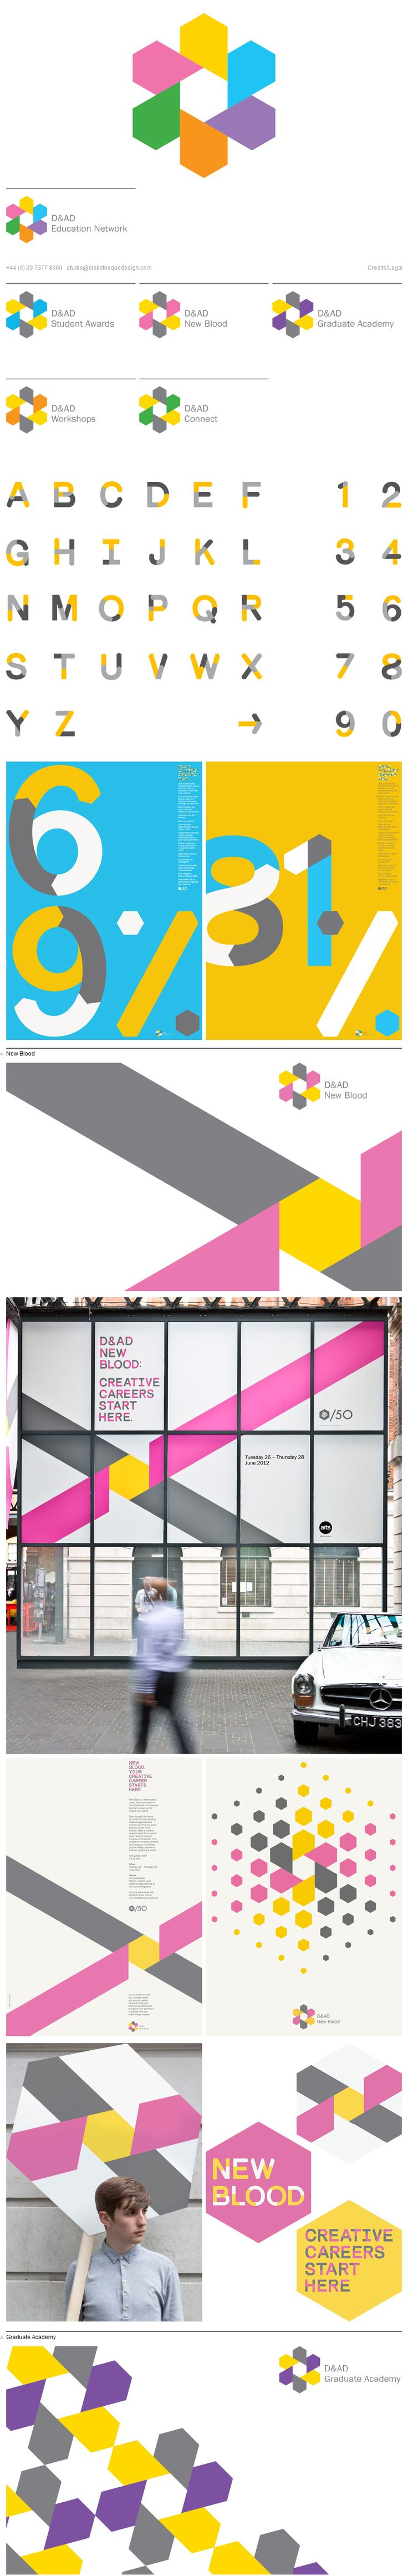 Identity composed of elements coming together – D&AD Education Network _ Bibliothèque Design